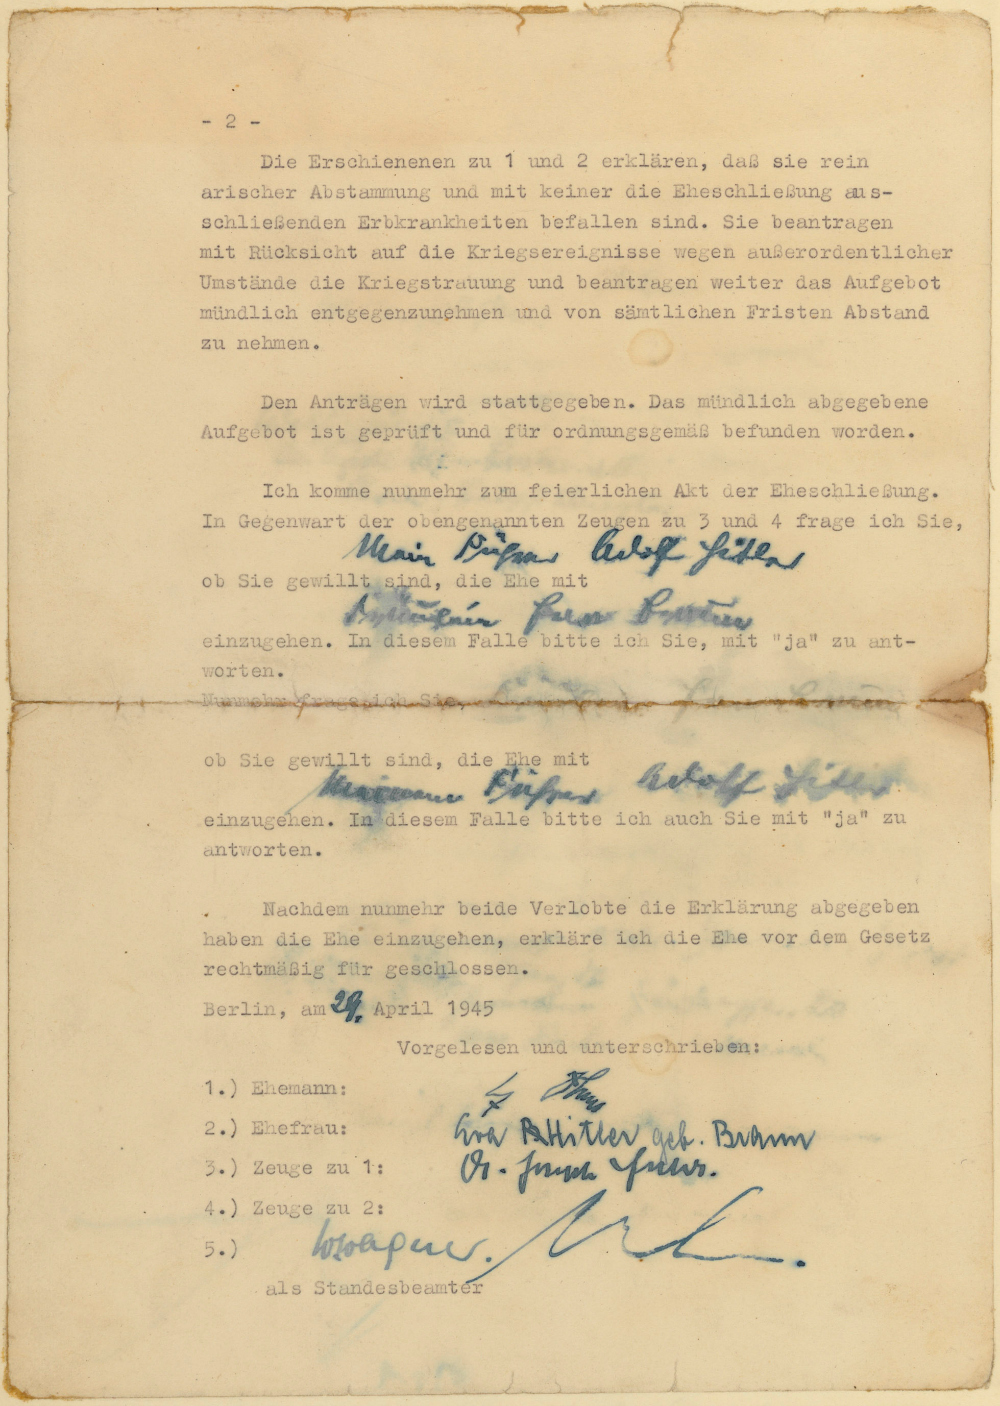 hitlers political testament personal will and marriage certificate from the bunker in berlin to the national archives in washington d c part i the creation of the documents wedding certificate certificate1 certificate 2